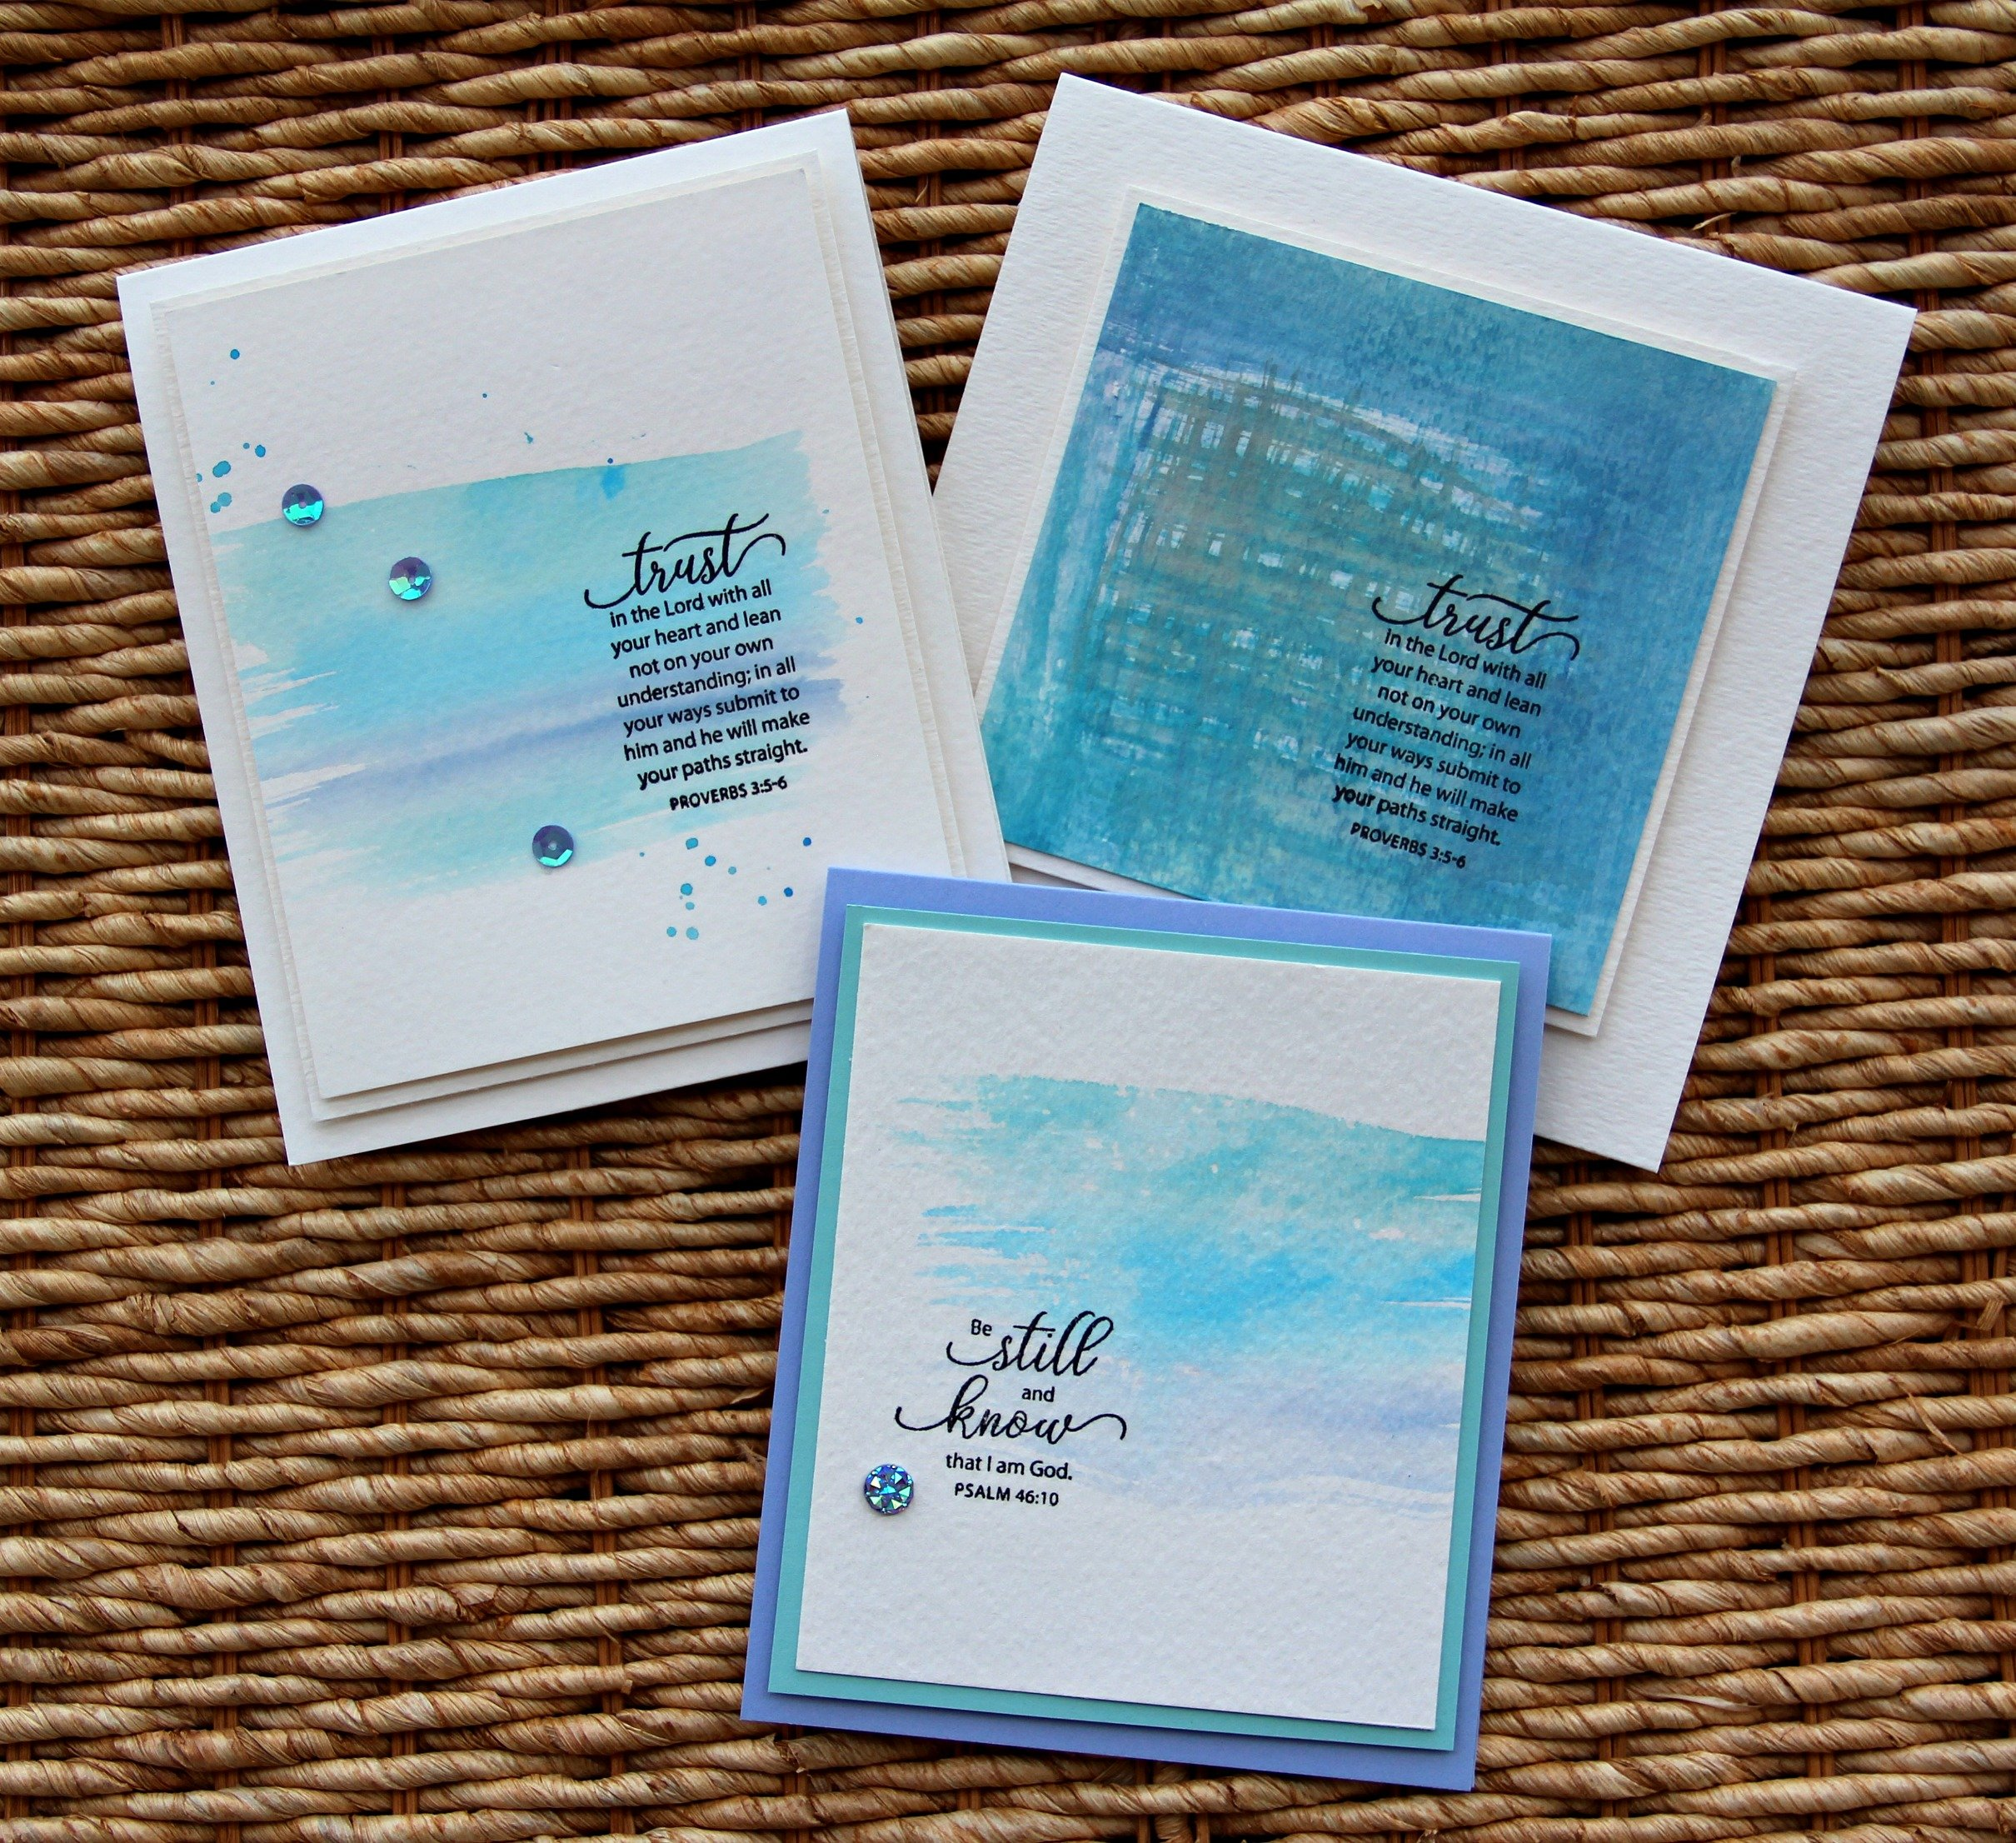 Stamp Simply Clear Stamps Fear Not and Words of Encouragement Christian Religious (2-Pack) 4x6 Inch Sheets - 17 Pieces by Stamp Simply (Image #6)